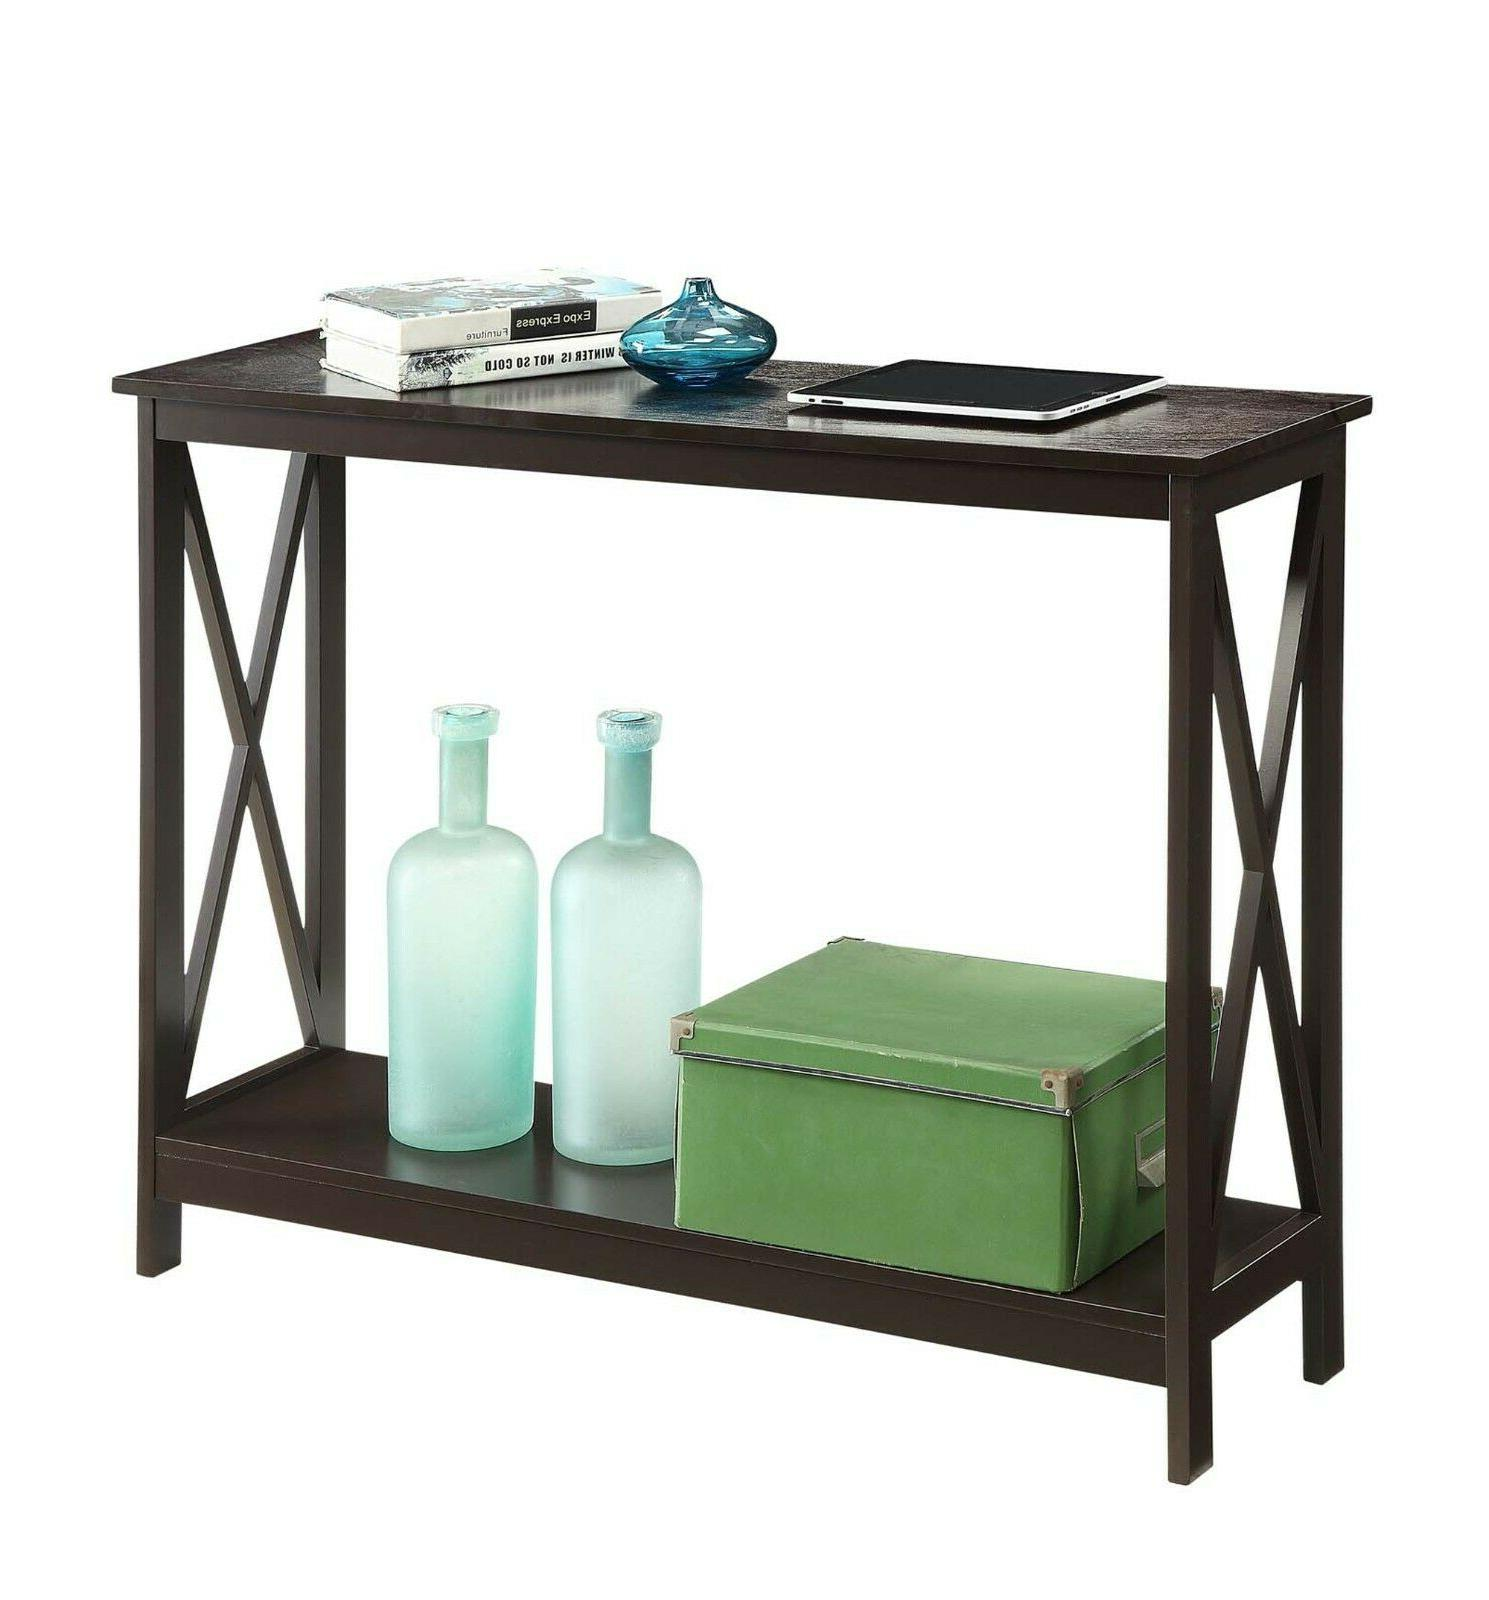 Wood Console Tables Accent Hall Foyer Espresso